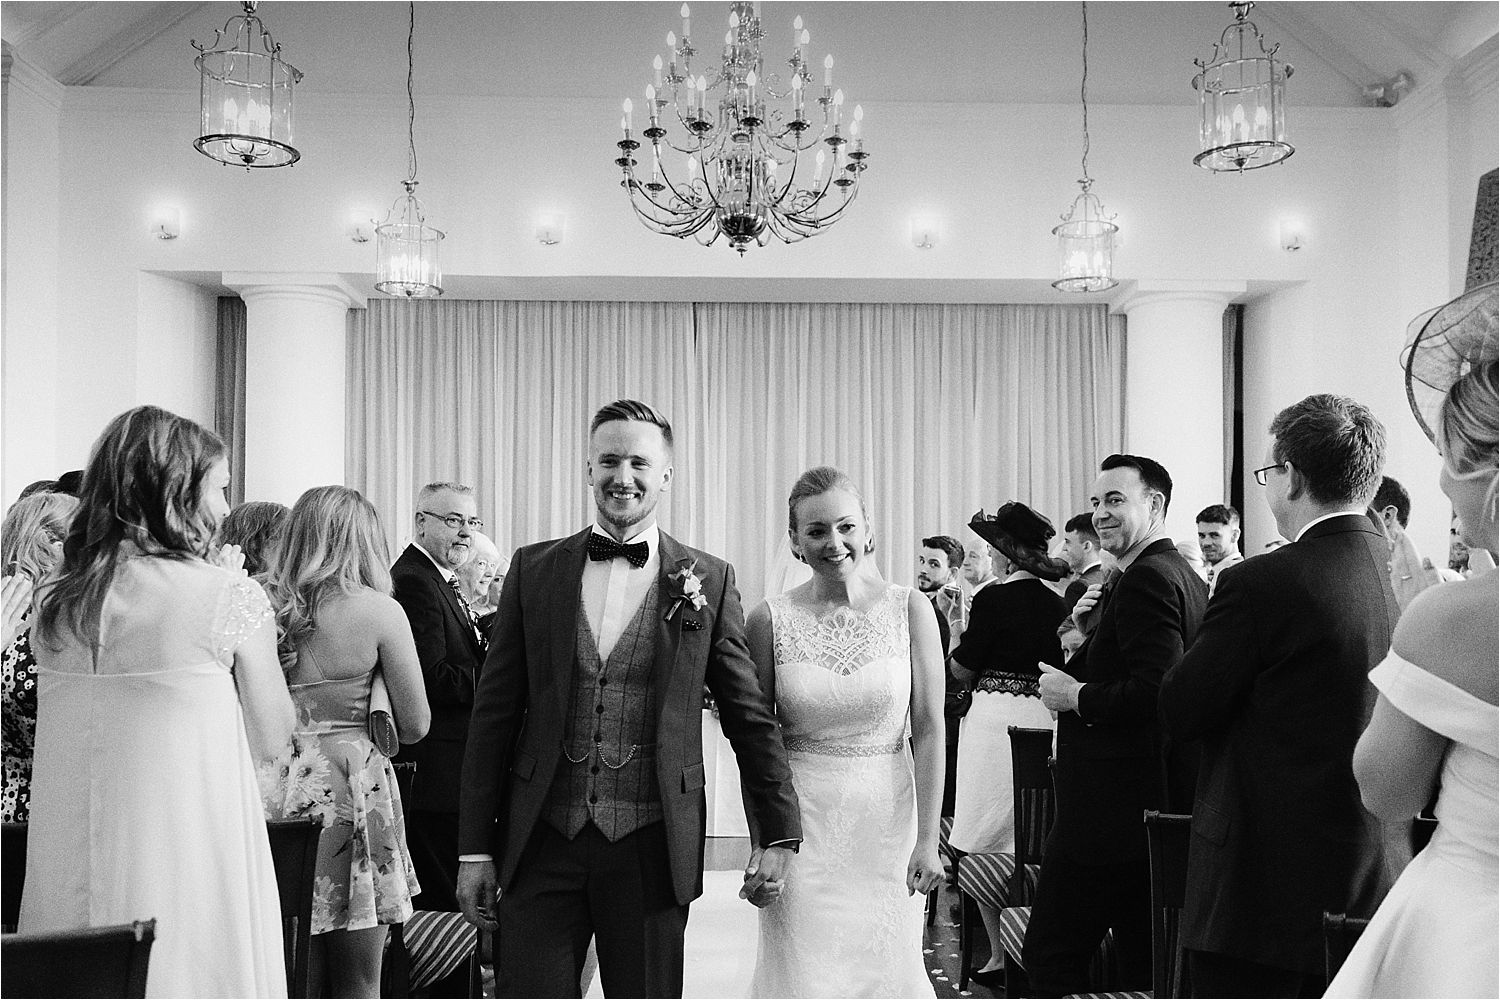 Wedding couple wlak down the aisle after their Low Wood Bay wedding ceremony. Grooms suit by Whitfield and Ward